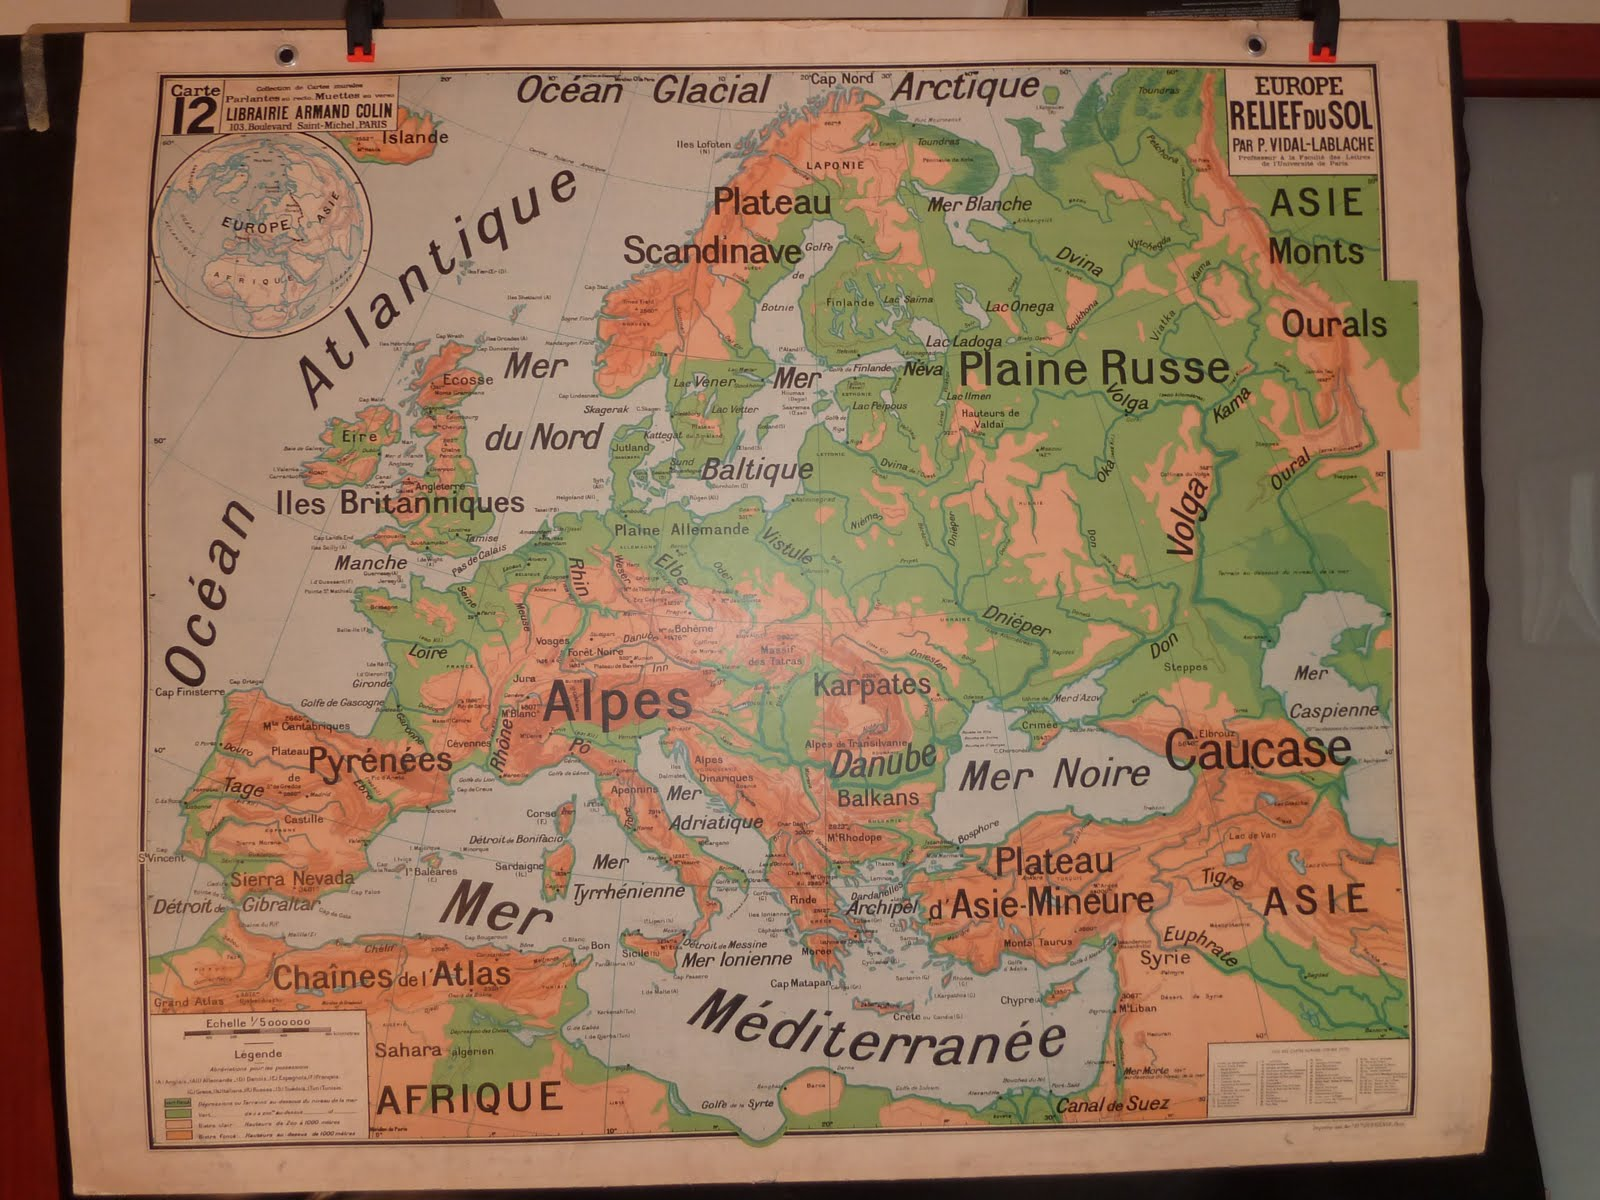 1948 World Map.Vintage French Posters Botany Animals Anatomy Old World Maps From